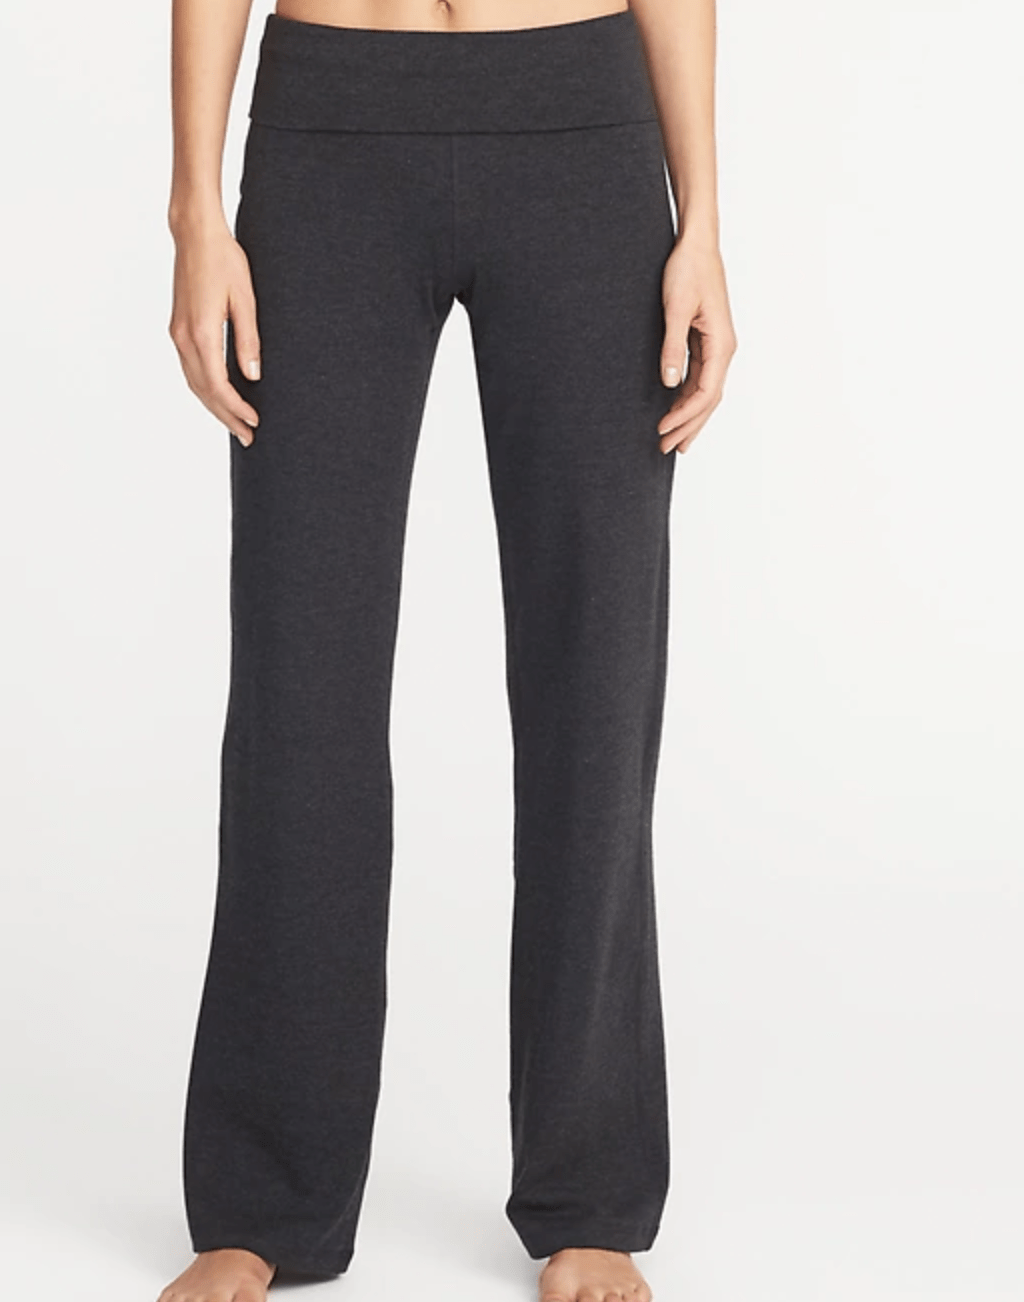 9f11f263e5ee6 Mid-Rise Wide-Leg Roll-Over Yoga Pants for Women by Old Navy - Proud ...